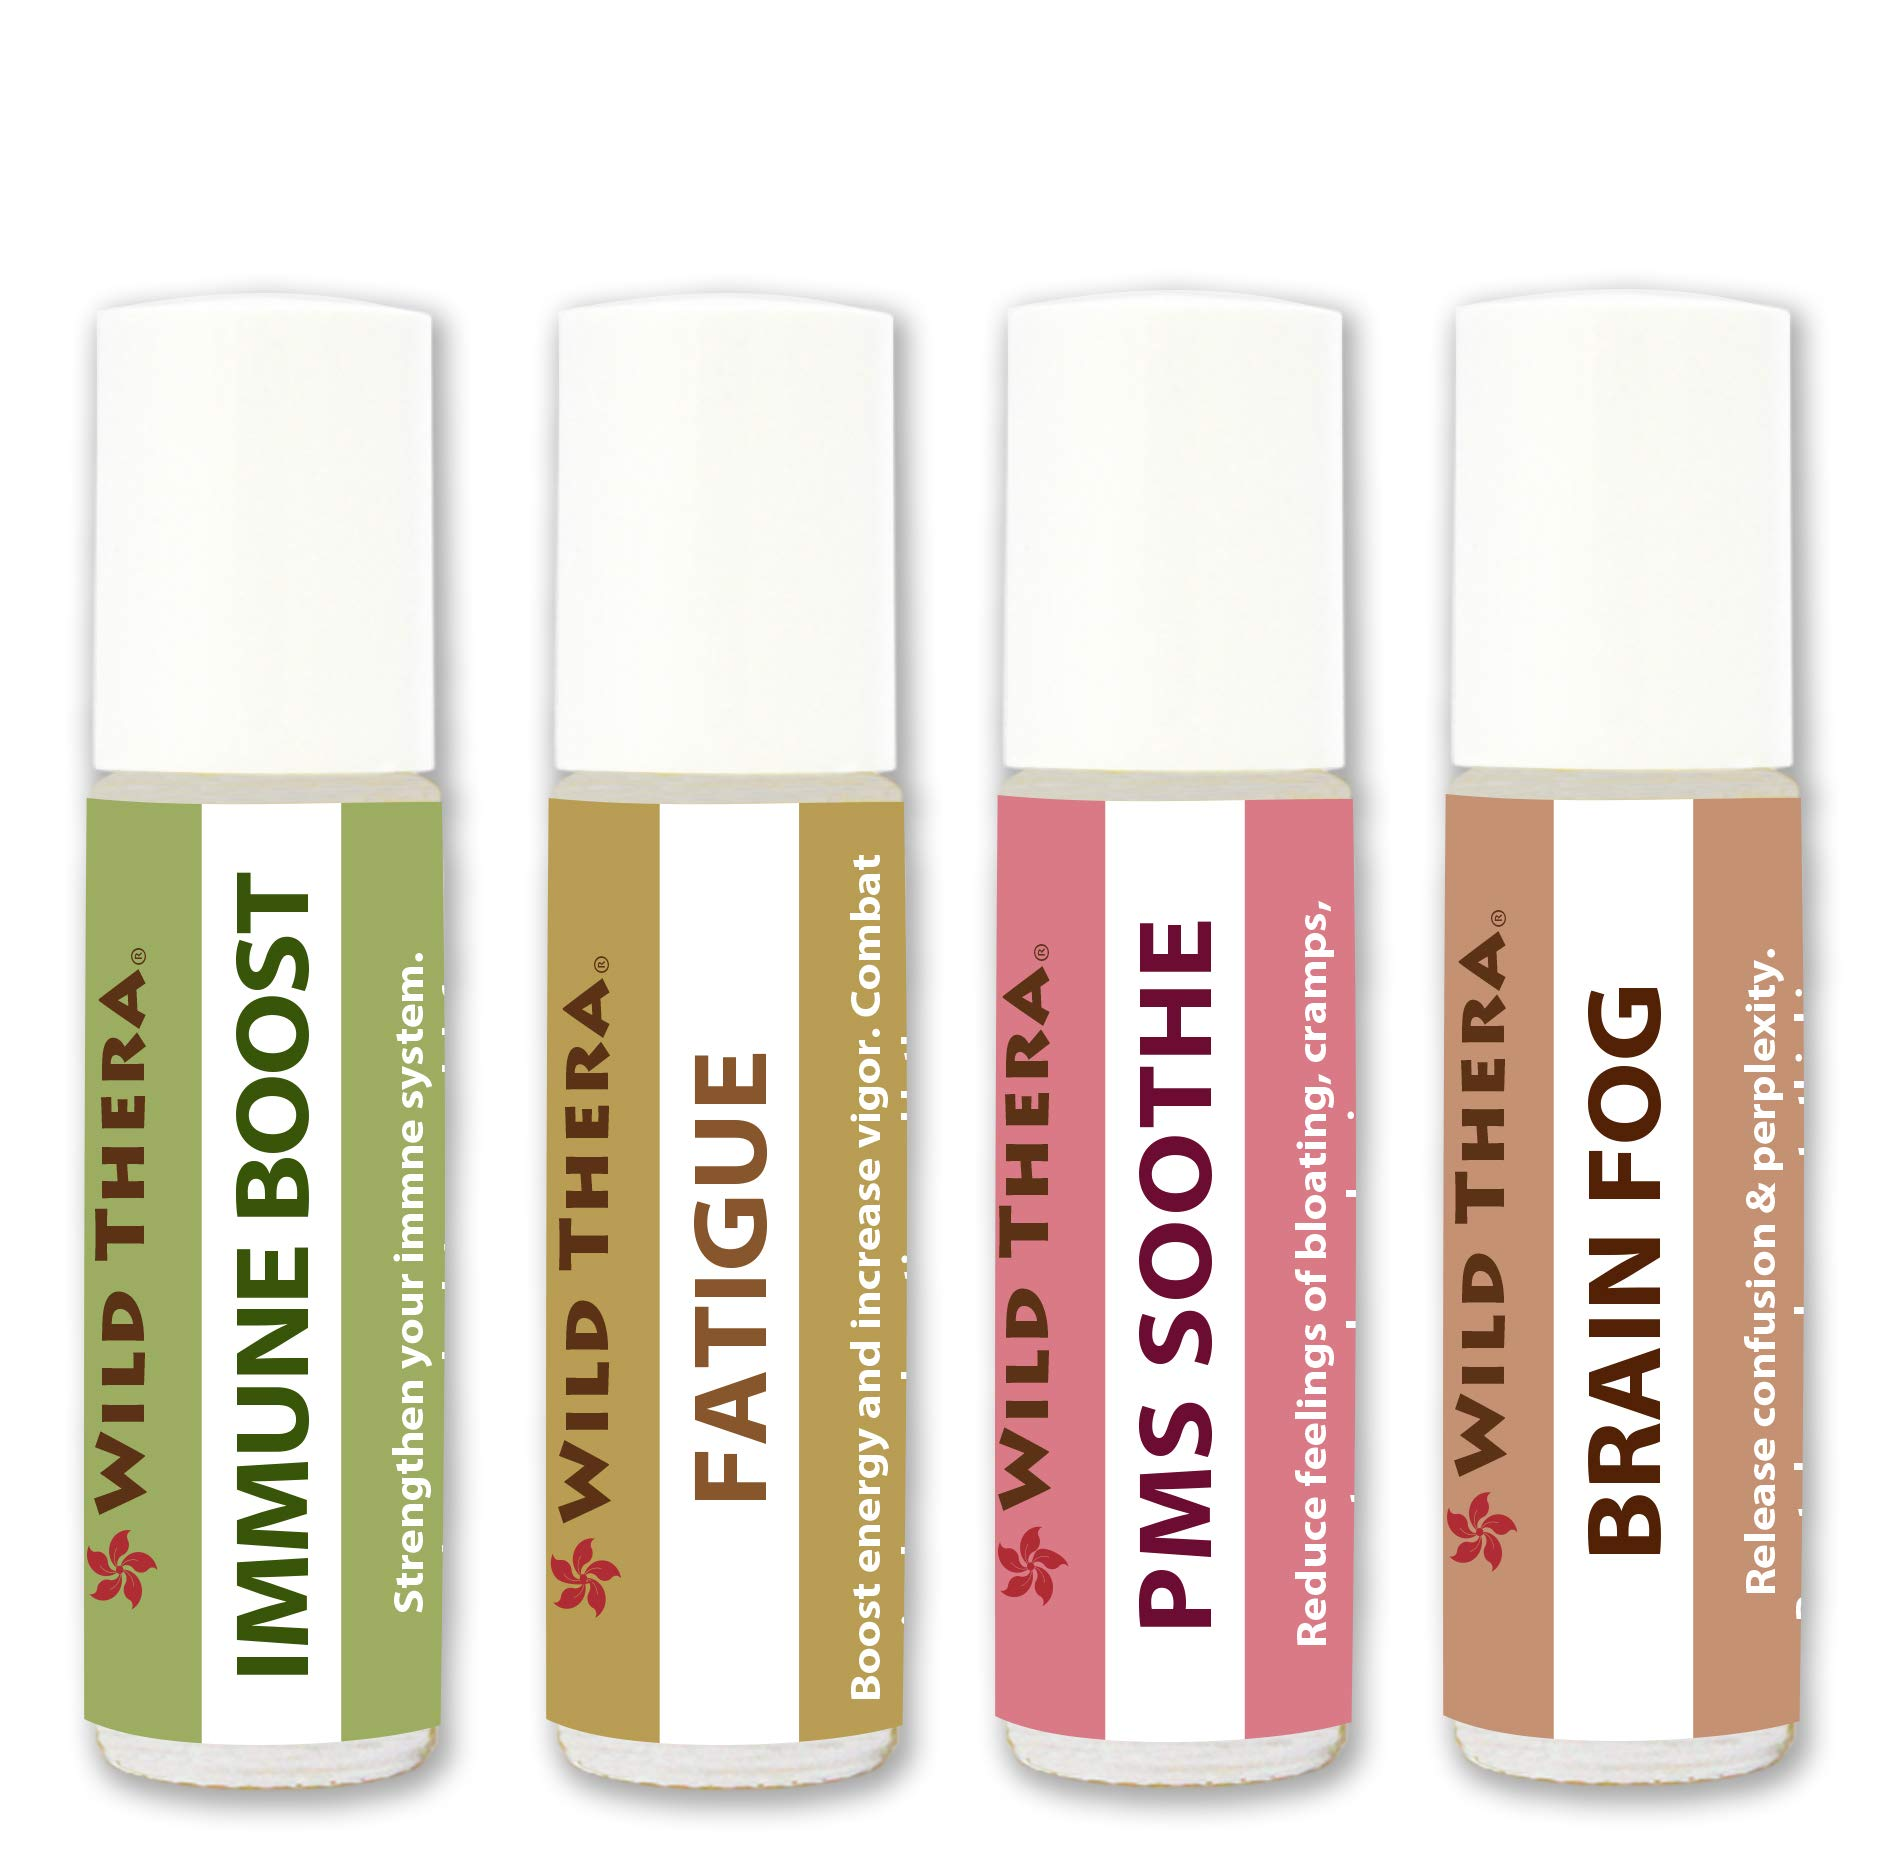 Wild Thera. PMS Support Set of 4 x 10ml. Pure Pre-Diluted Certified Aromatherapy Oils for PMS, Fatigue, Brain Fog and Immune Support. For Mood swings, exhaustion, confusion, nervousness and more.